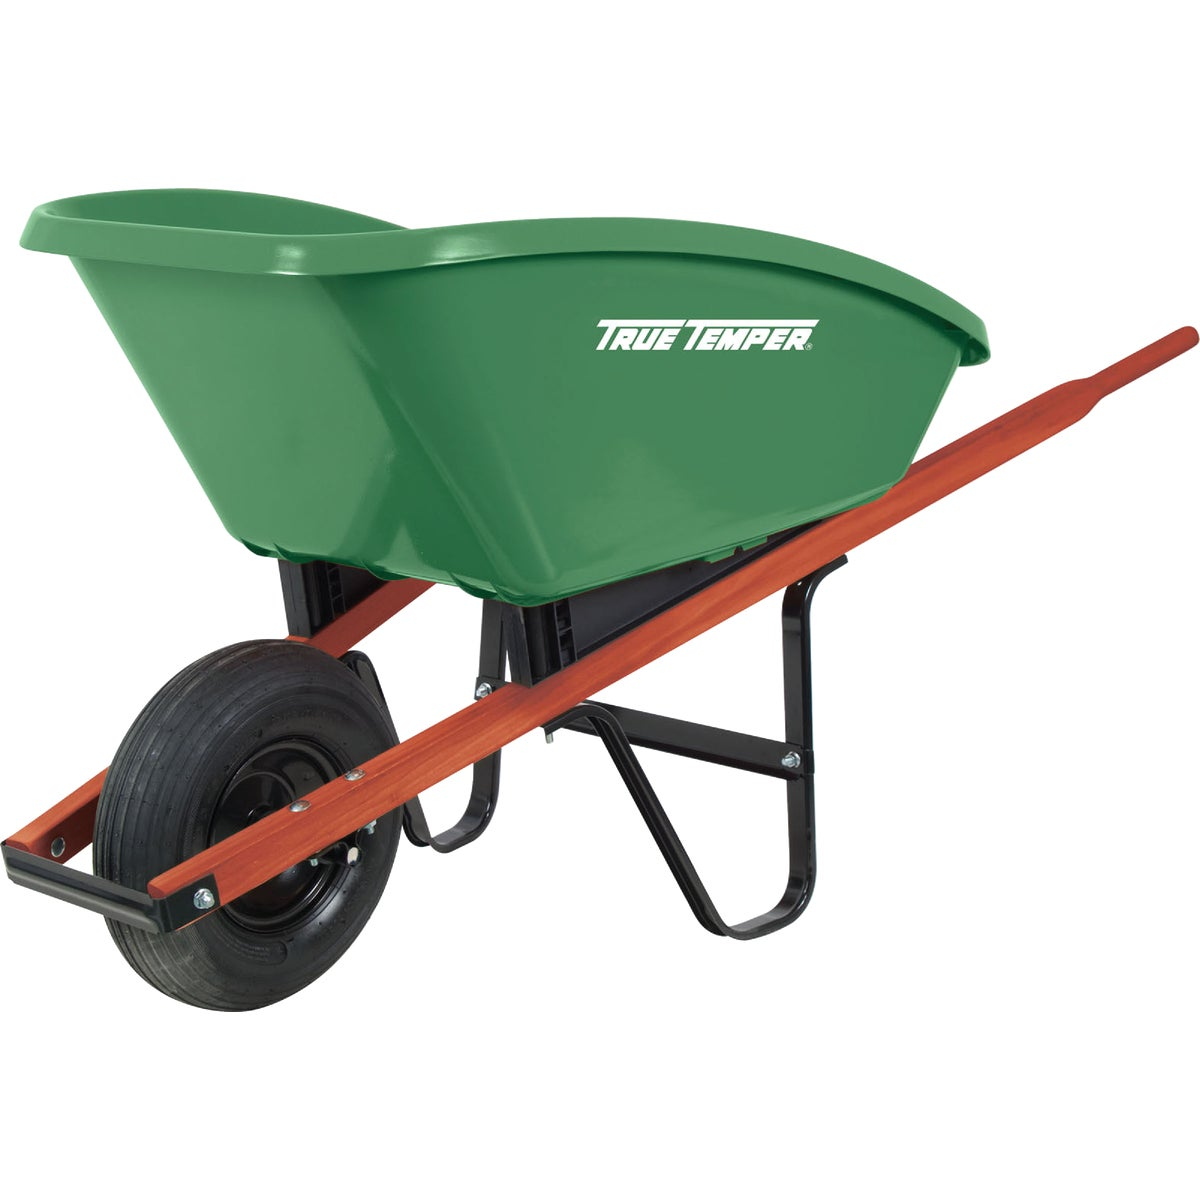 5 CU FT POLY WHEELBARROW - SP5 by Ames True Temper